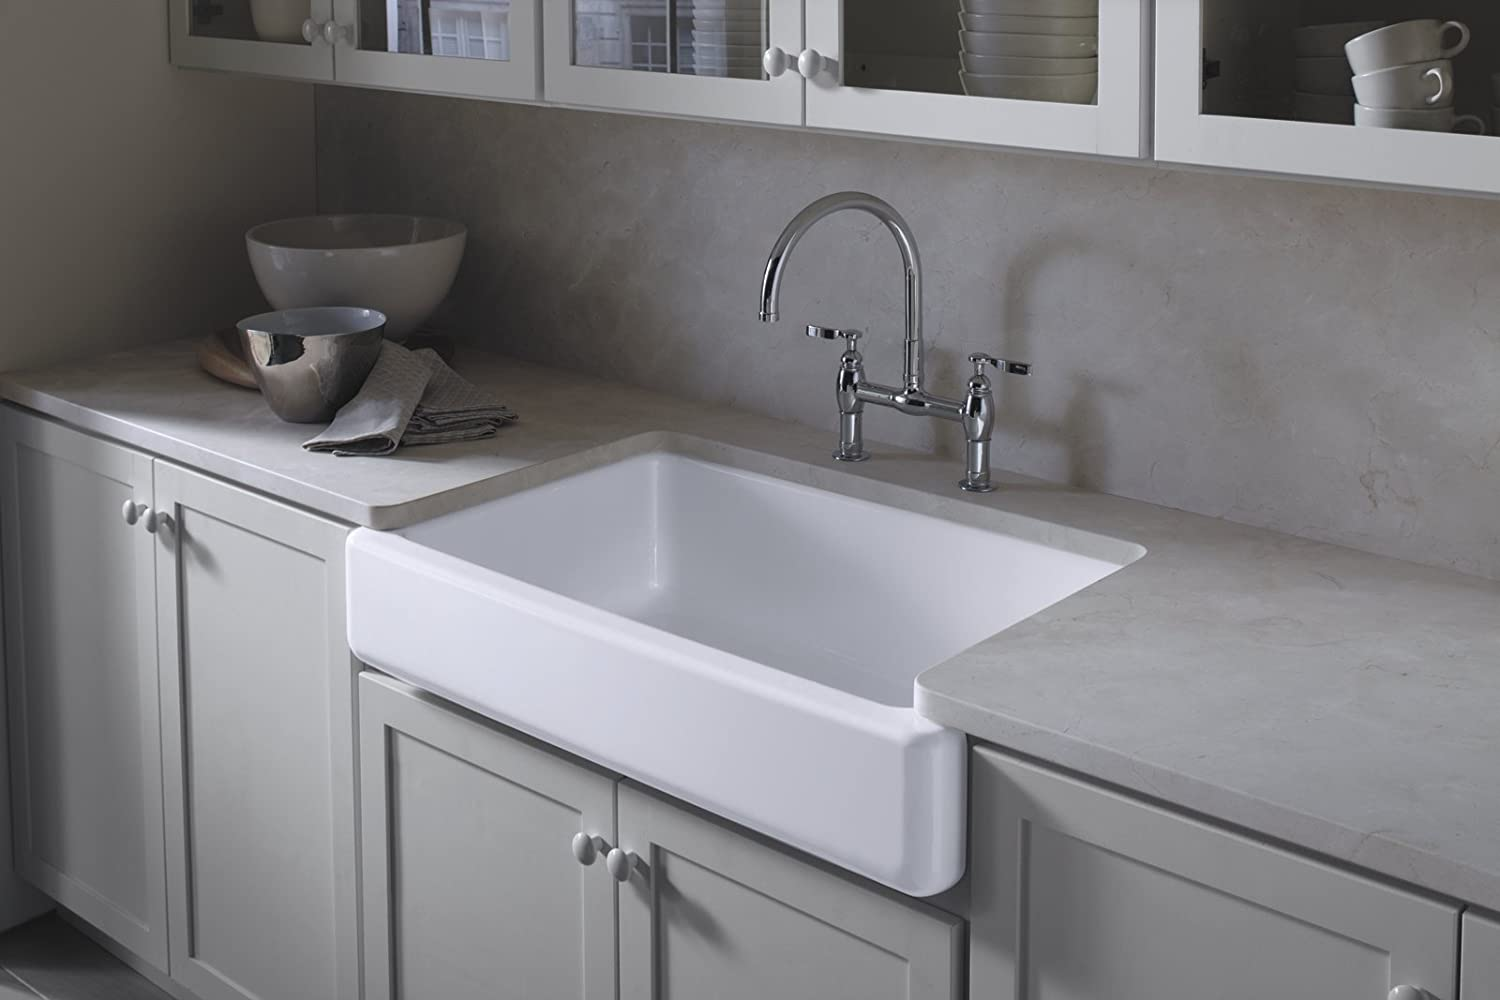 Kohler stainless steel farmhouse sink - Kohler K 6488 0 Whitehaven Self Trimming Apron Front Single Basin Sink With Short Apron White Single Bowl Sinks Amazon Com